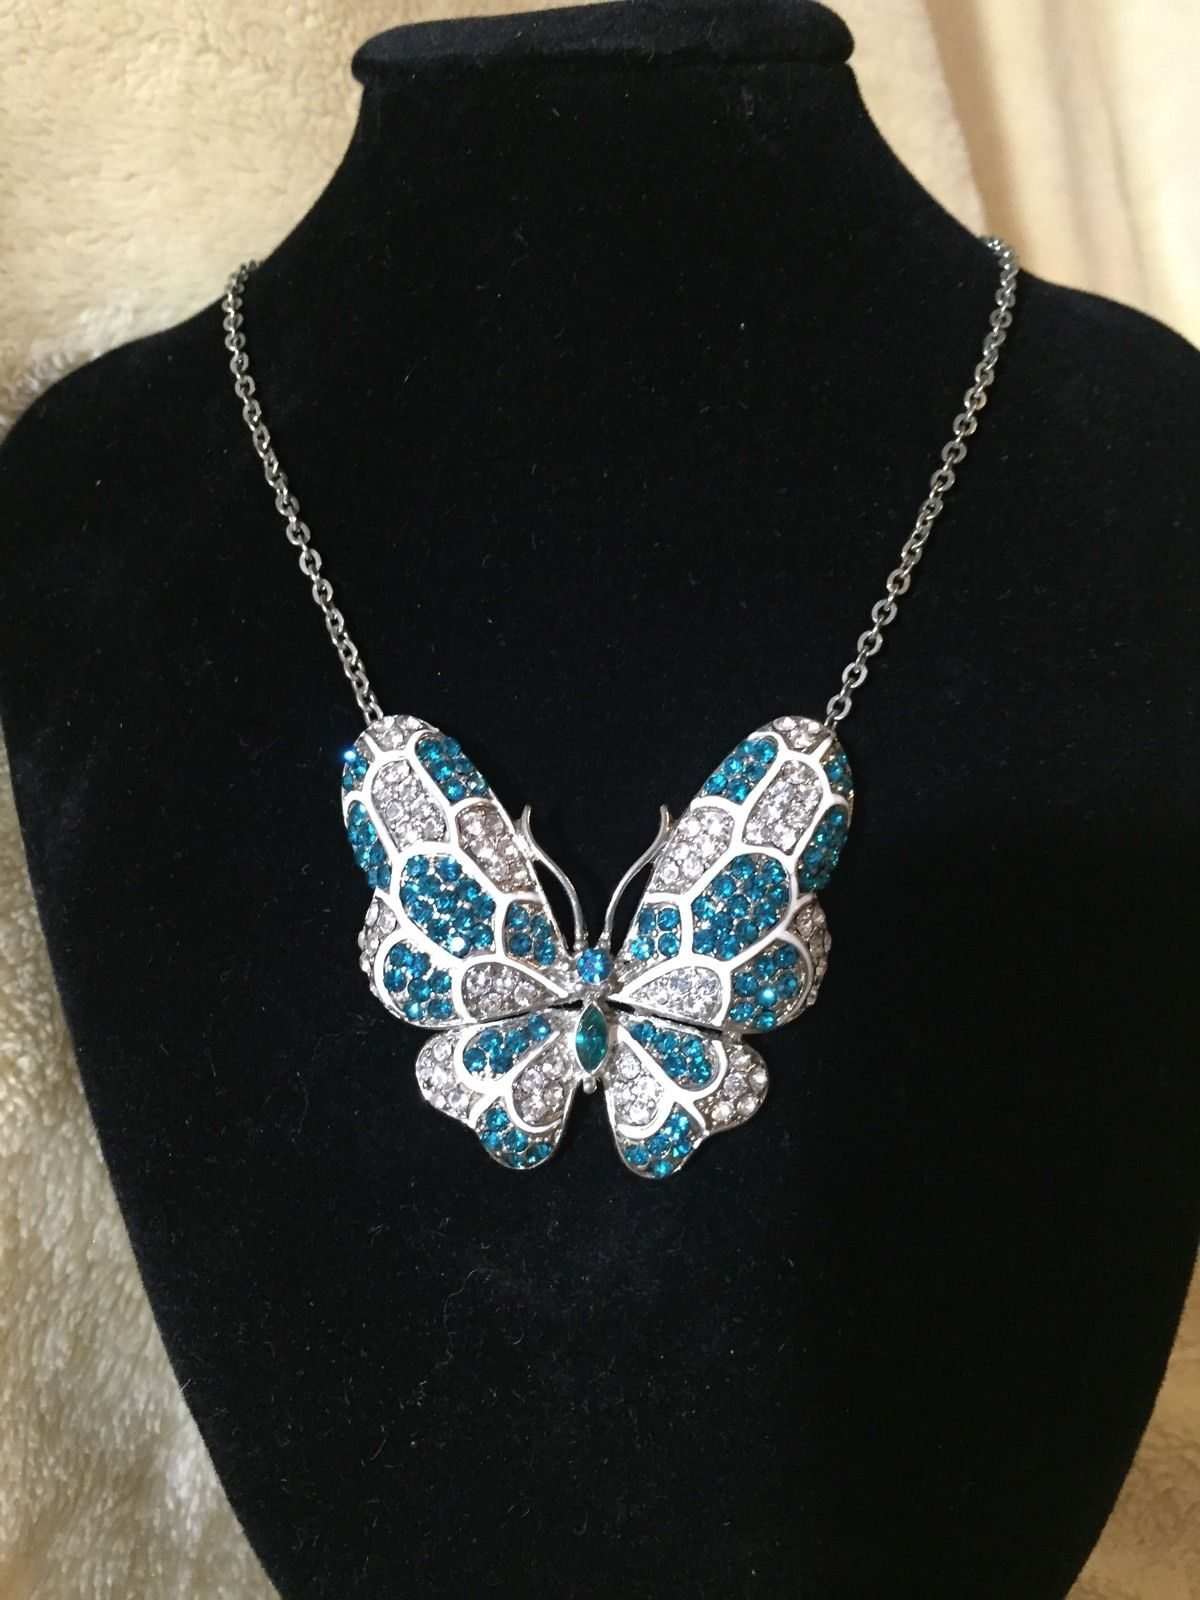 Teal Butterfly Jewelry Design